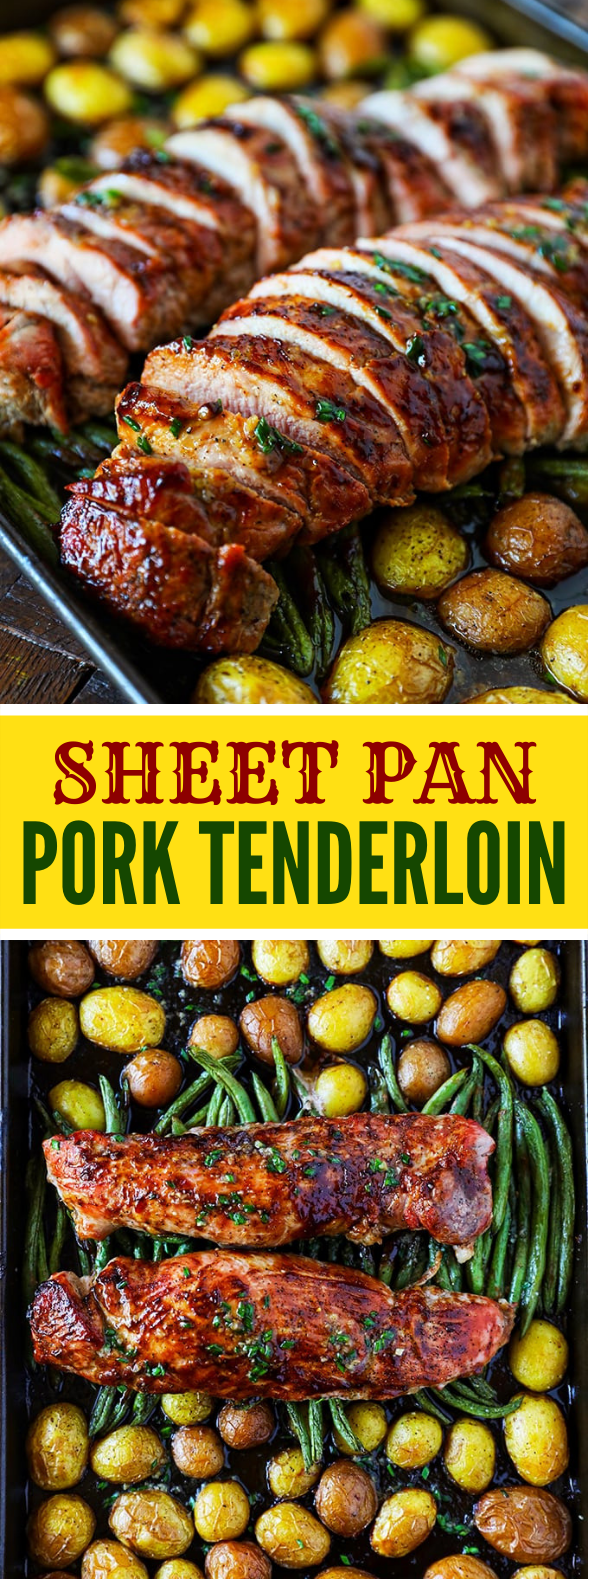 THE BEST PORK TENDERLOIN RECIPE #dinner #comfortfood